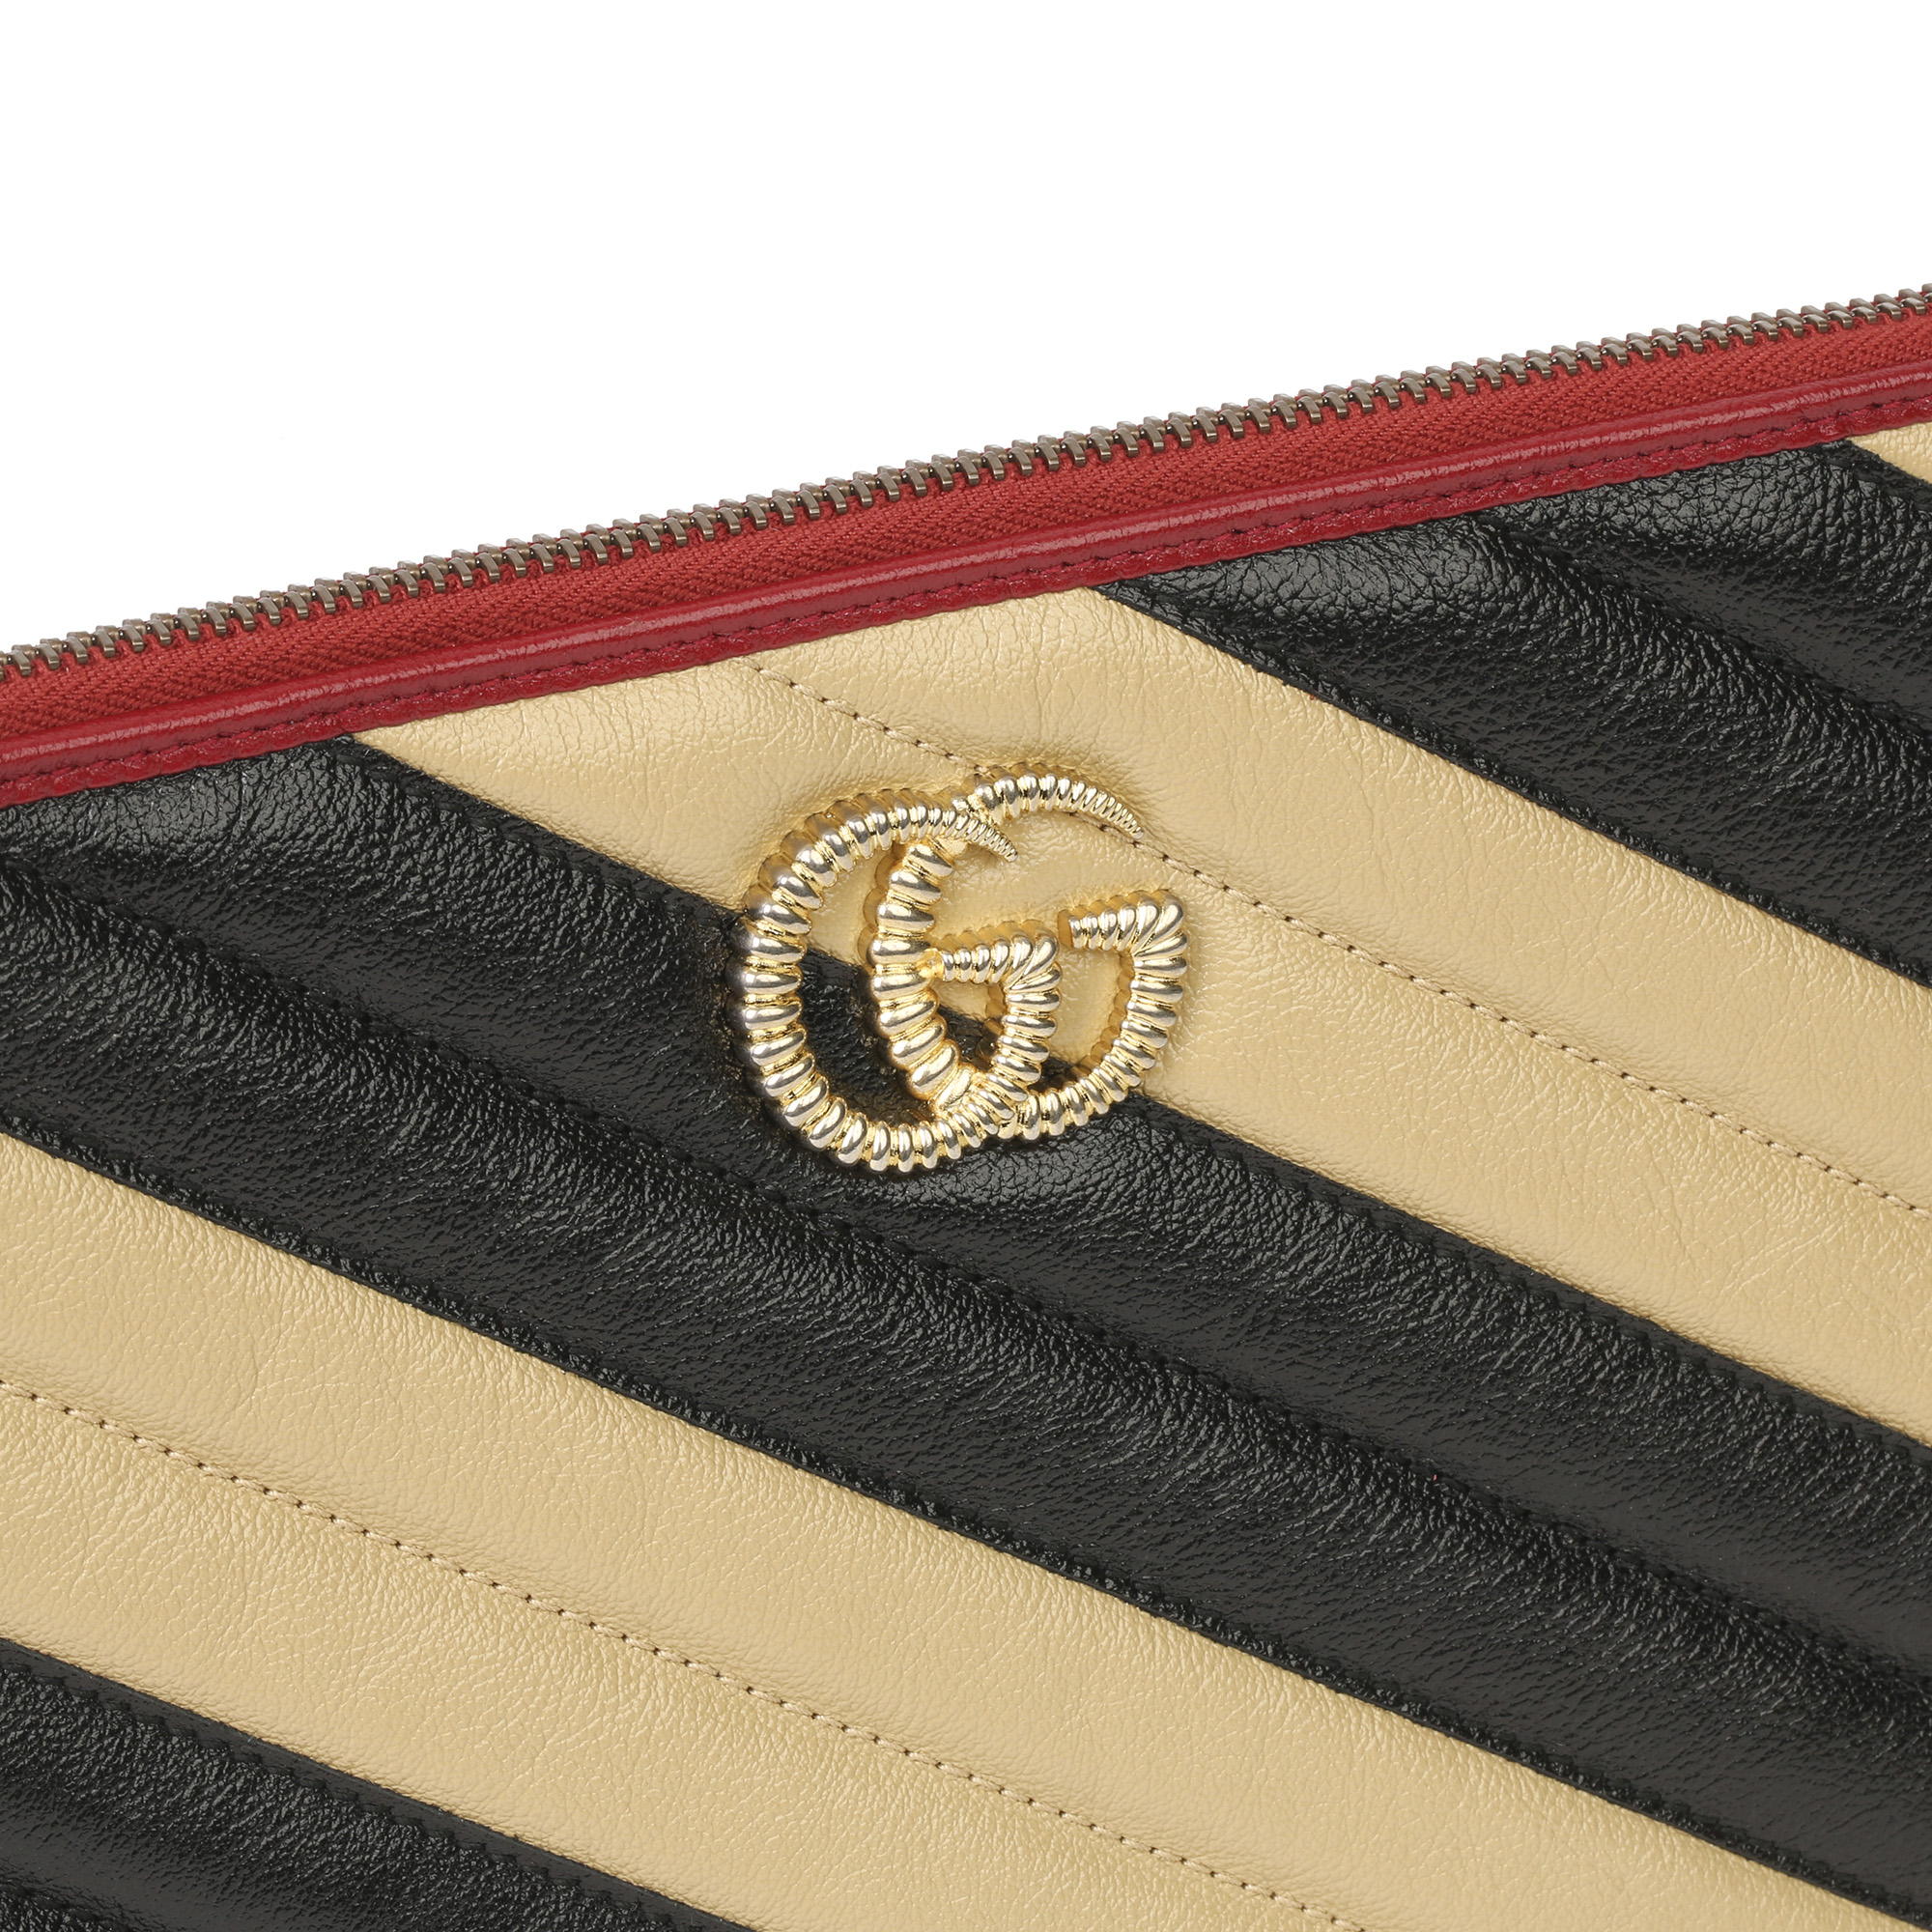 Gucci Black, Cream & Red Diagonal Quilted Aged Calfskin Leather Marmont Pouch - Image 7 of 11